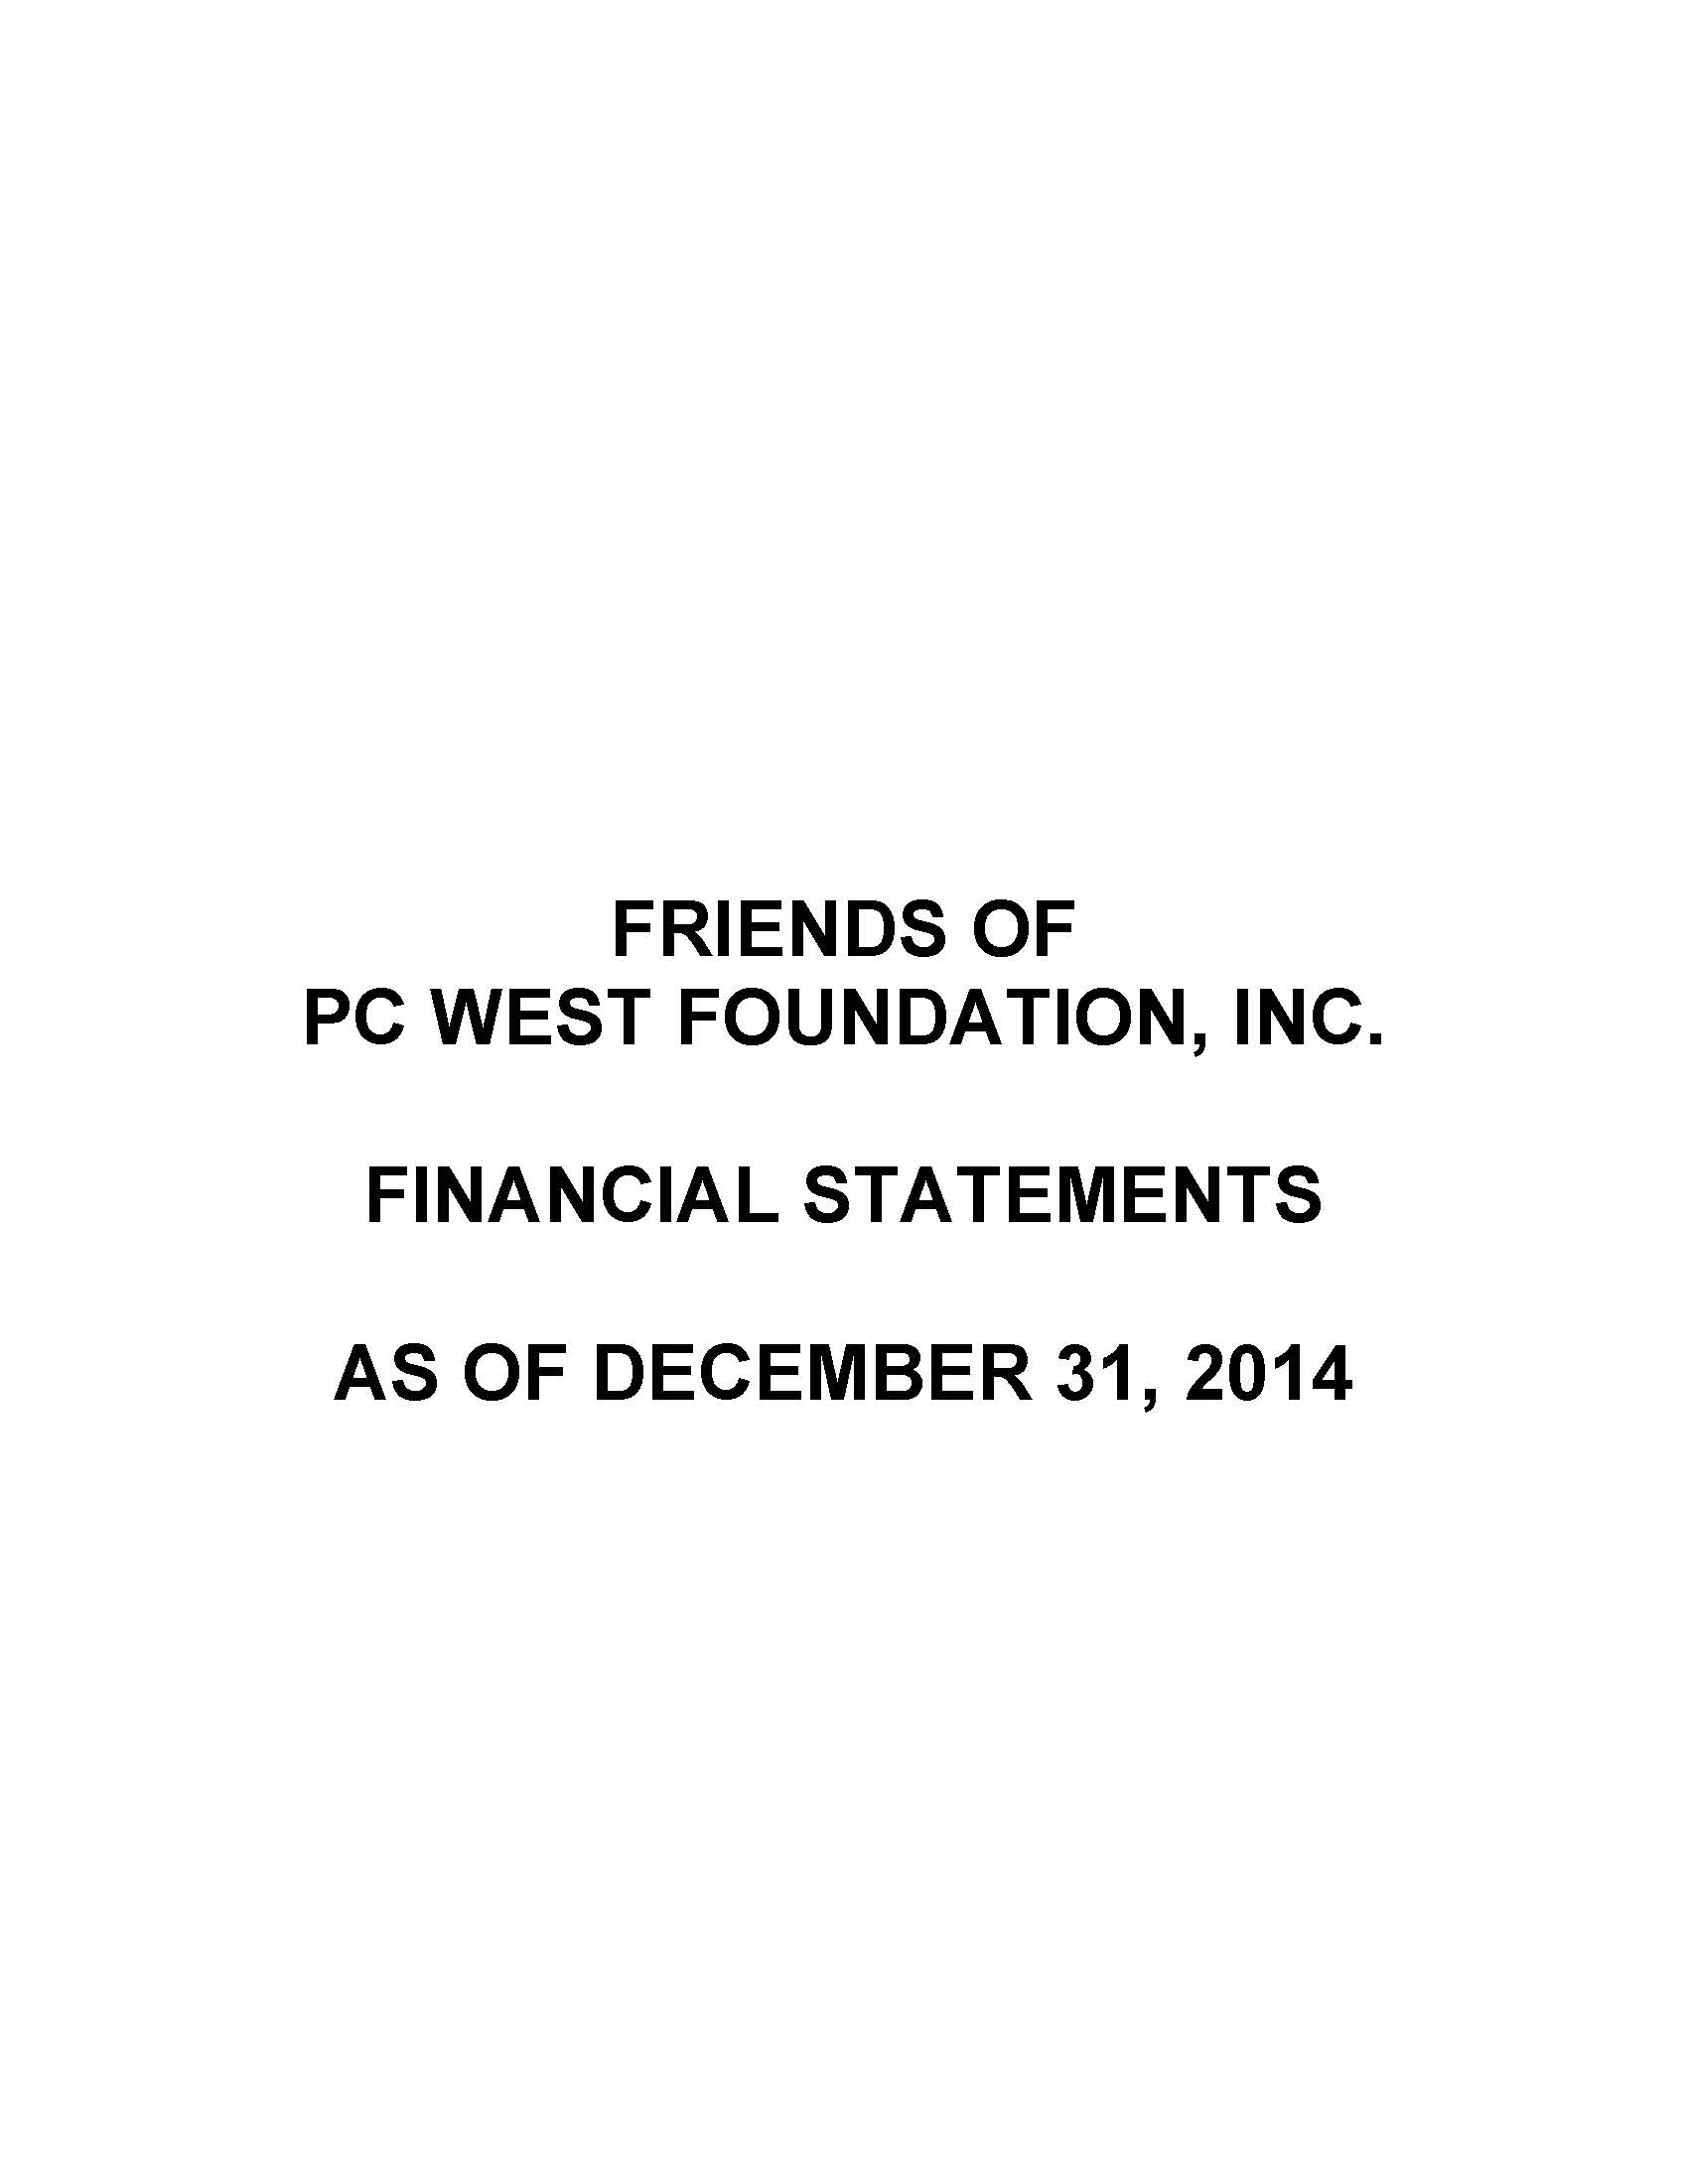 2014-12-31_Friends_of_PCW_Financial_Statements_Page_1.jpg